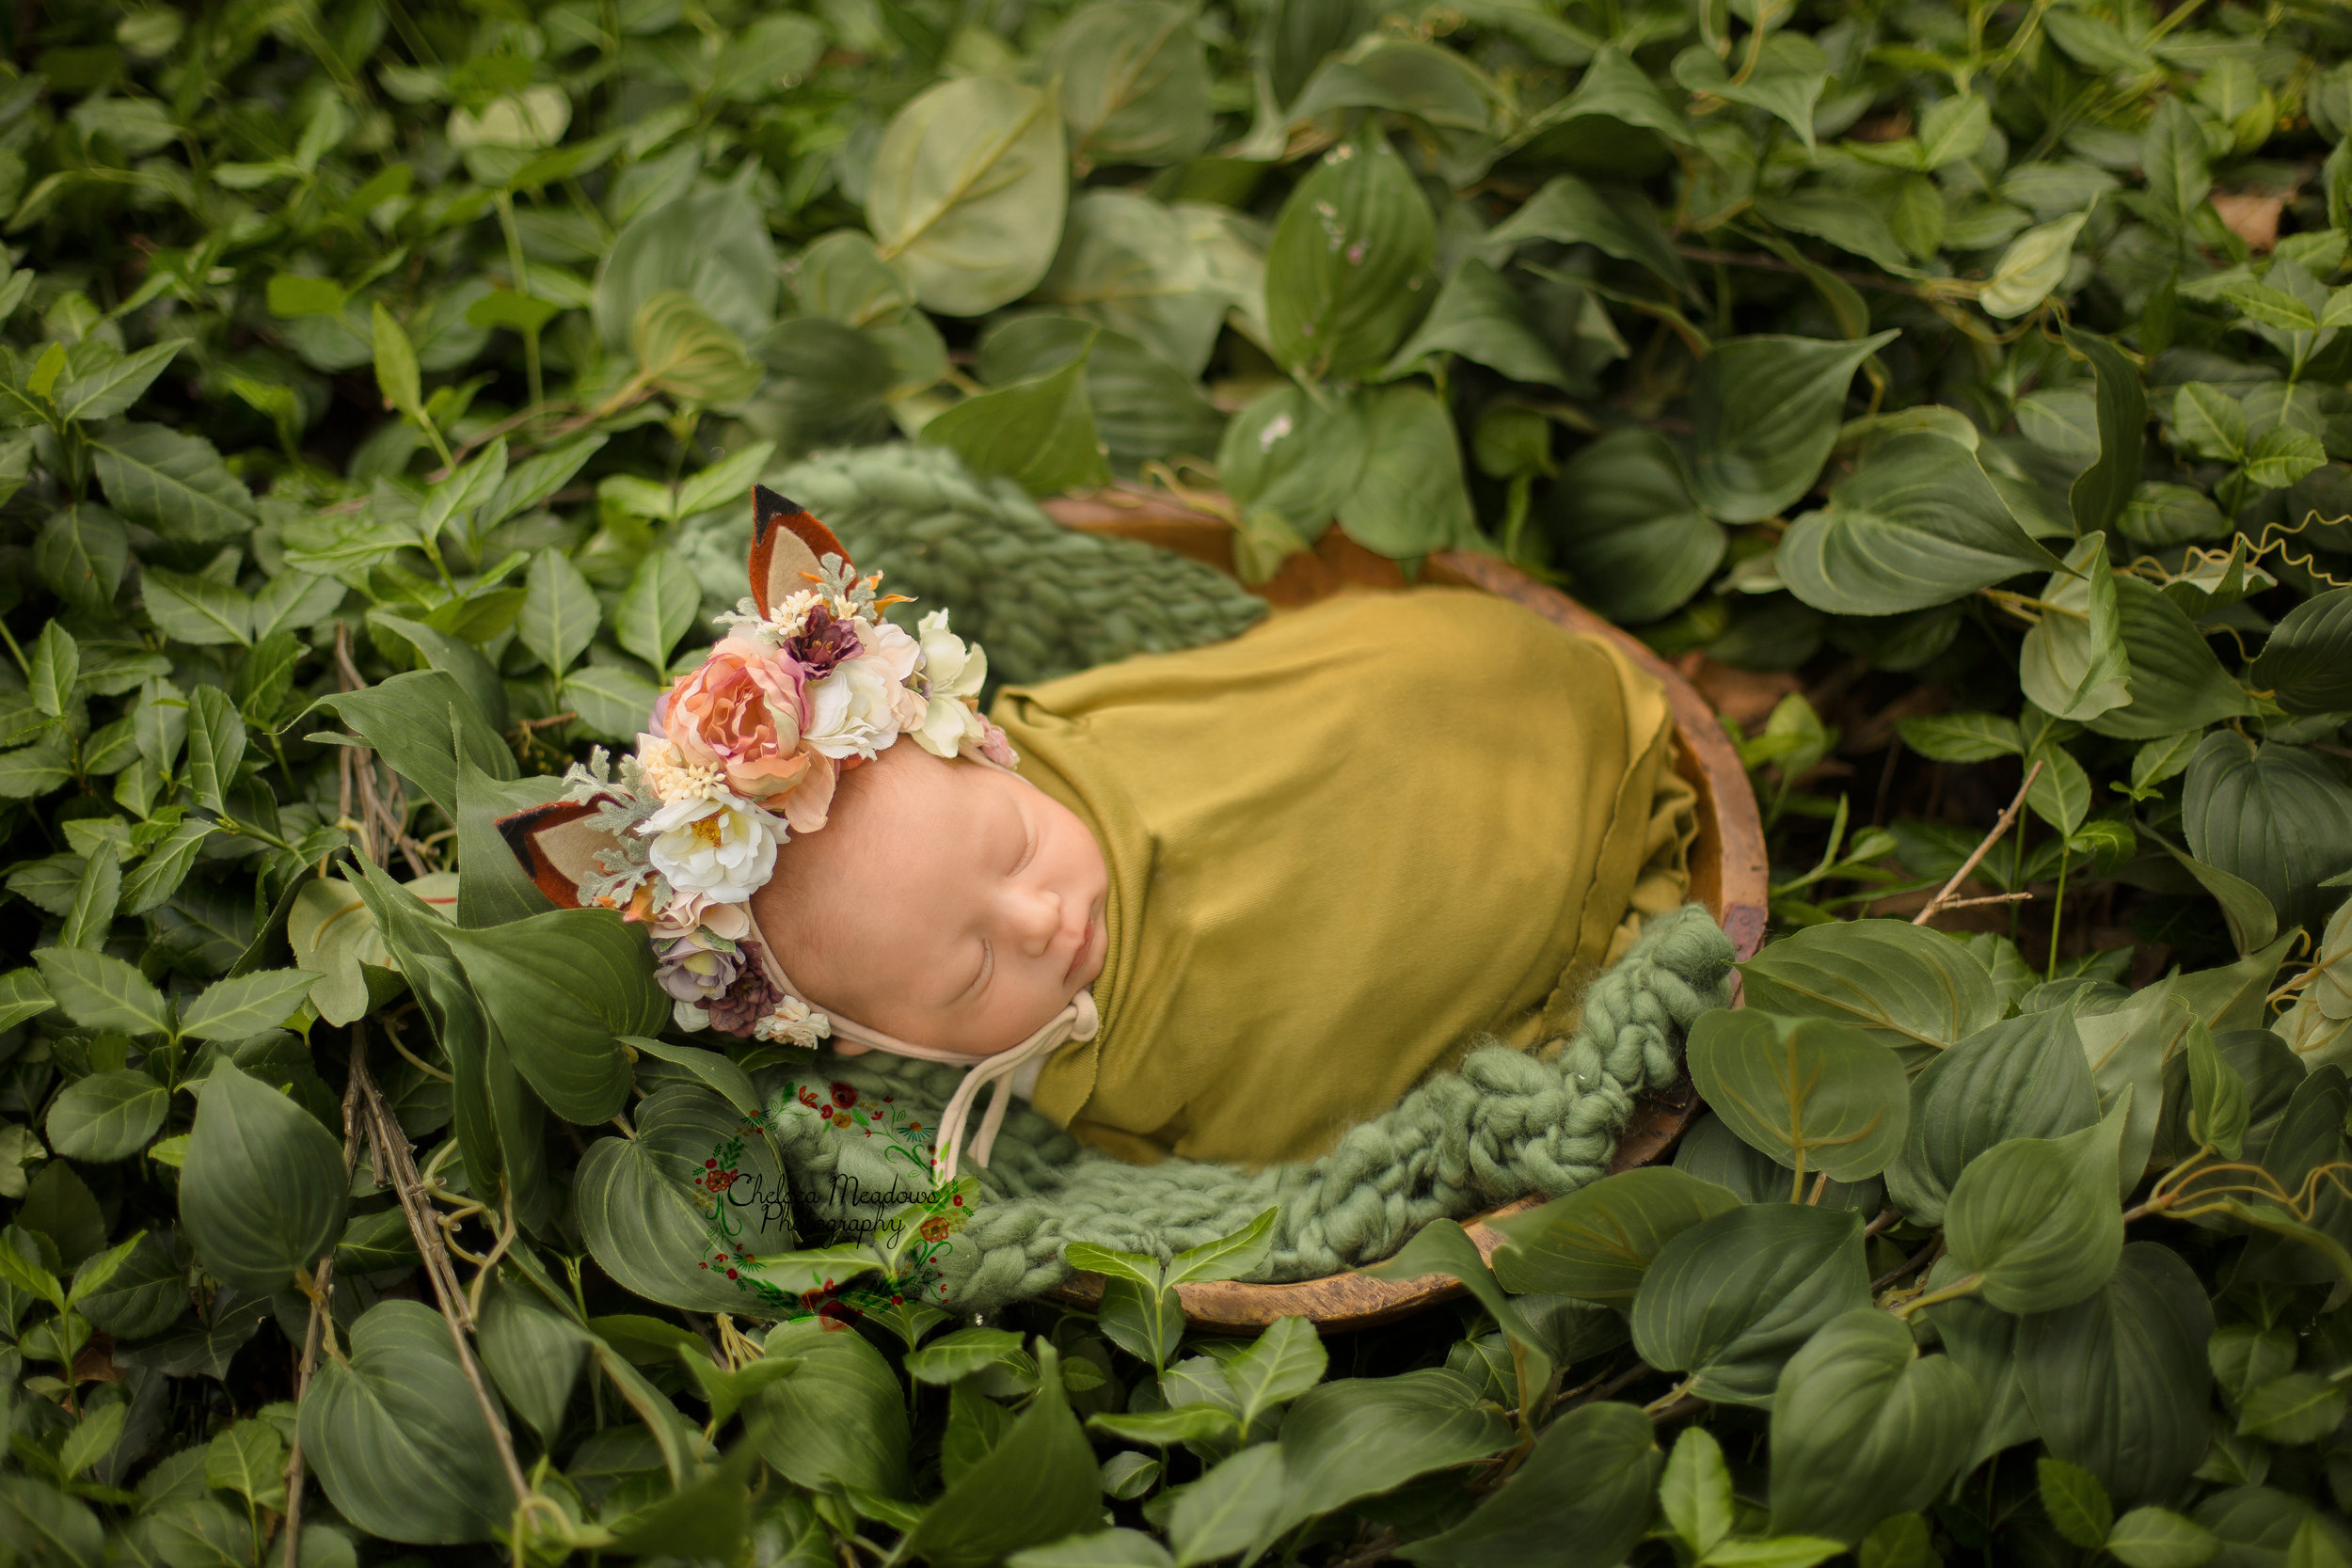 Evvie Newborn Photos - Nashville Newborn Photographer - Chelsea Meadows Photography80.jpg